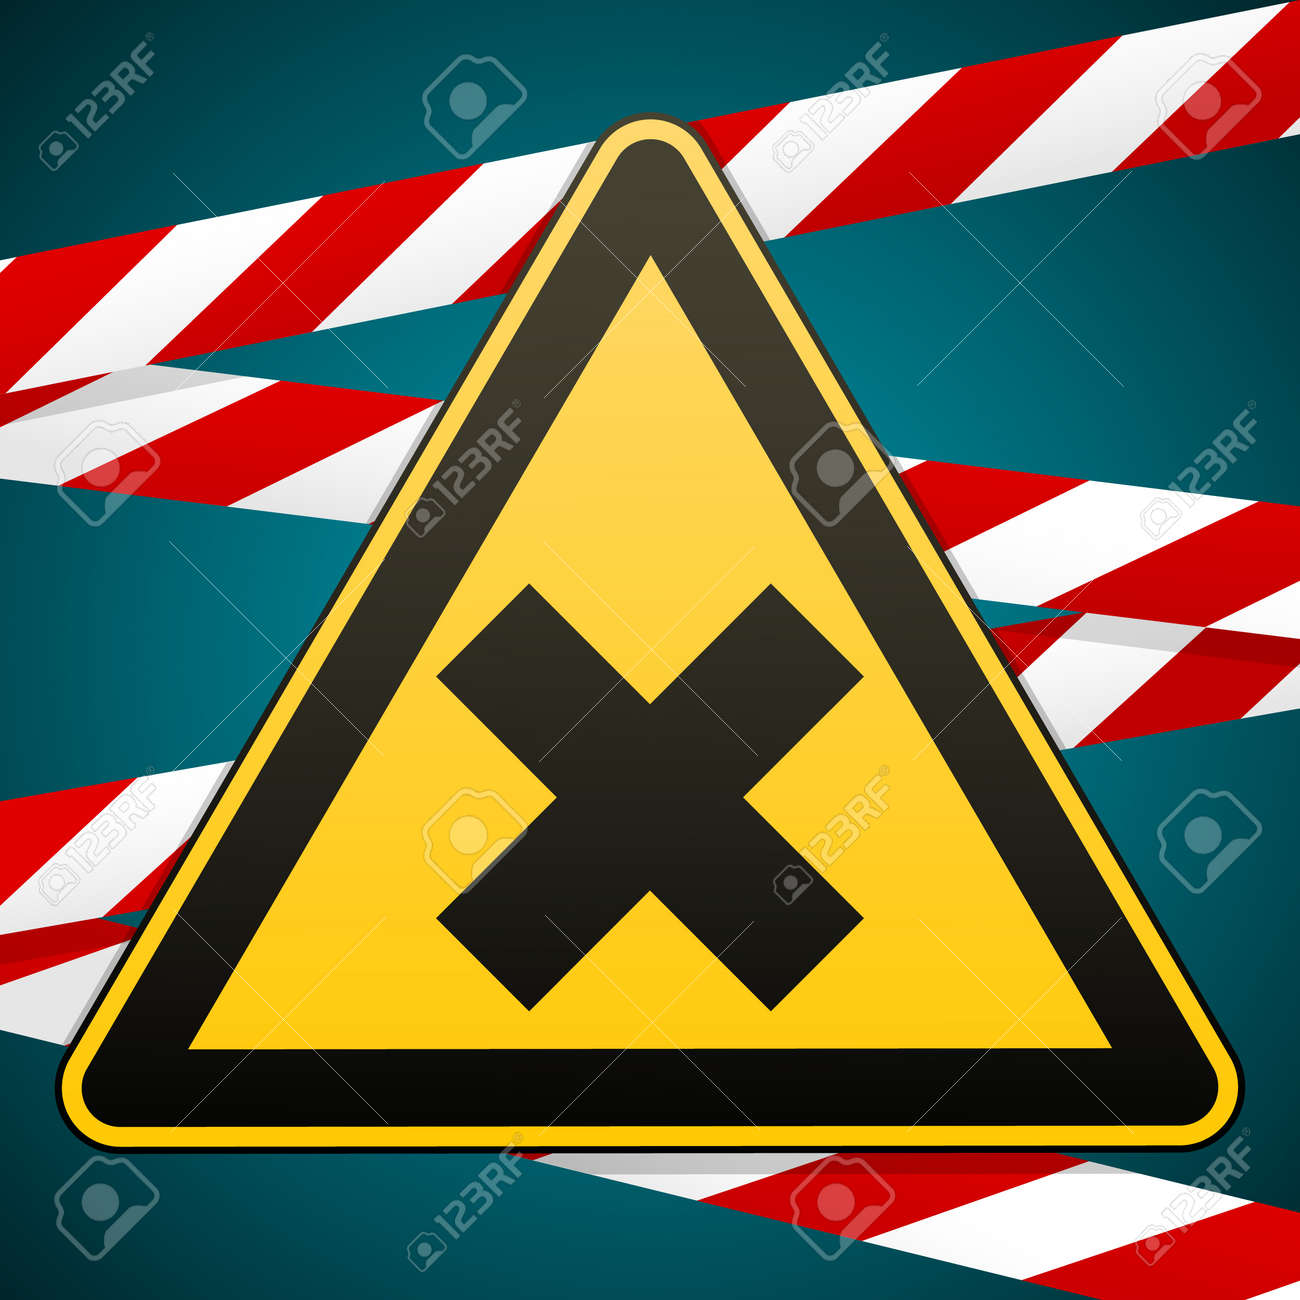 Safety sign caution danger harmful to health allergic irritant caution danger harmful to health allergic irritant substances barrier tape biocorpaavc Gallery